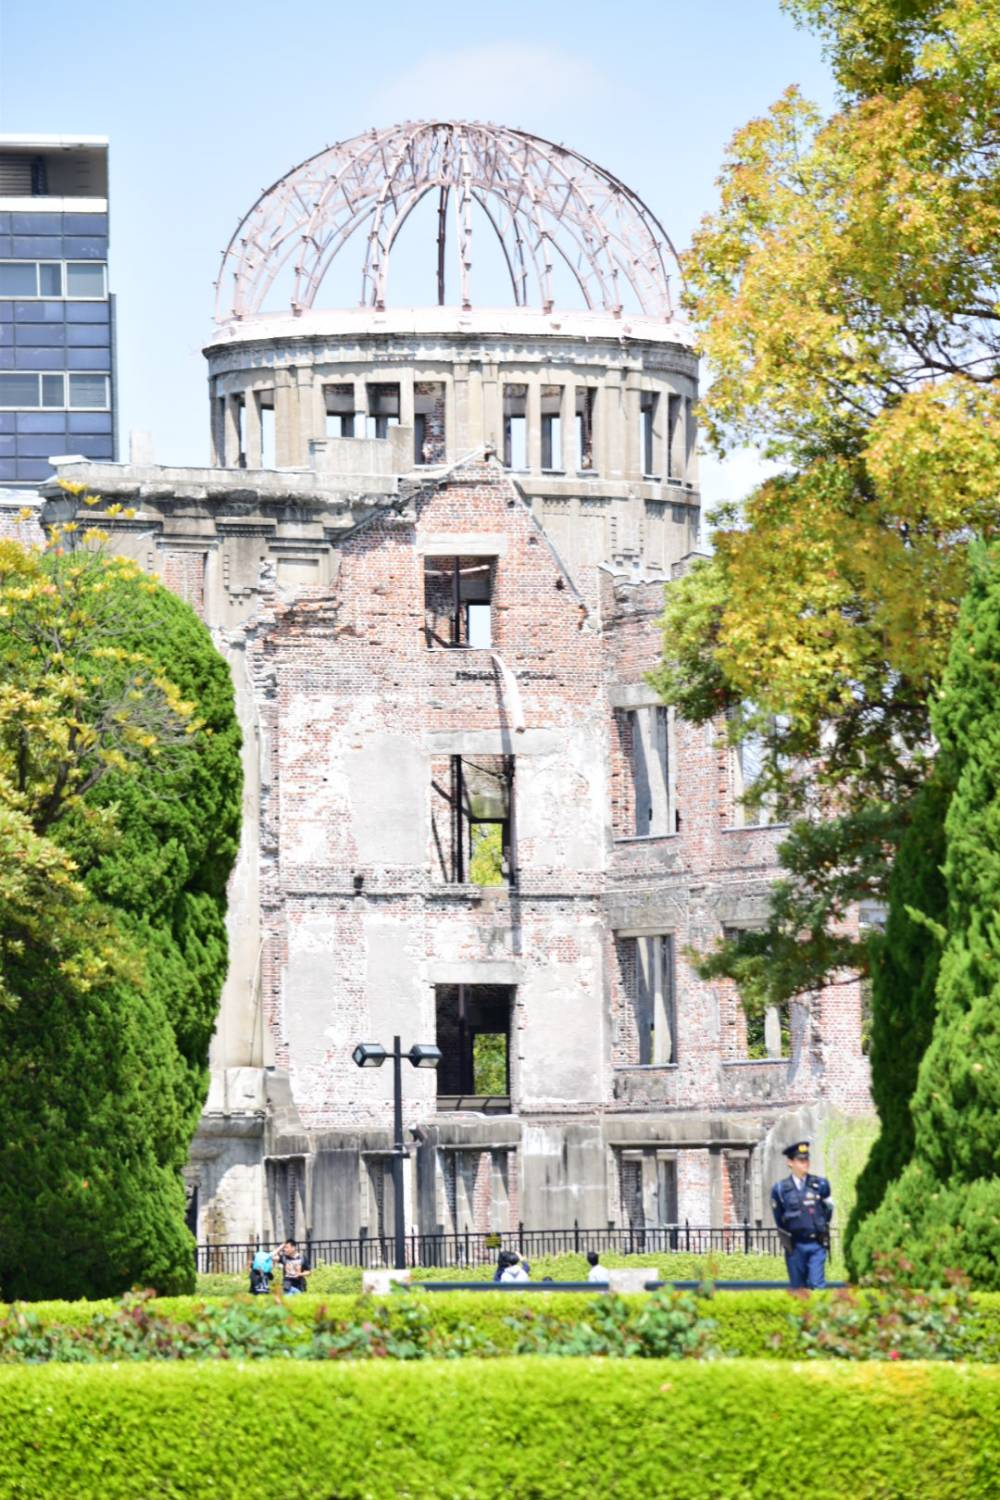 Hiroshima and the G7